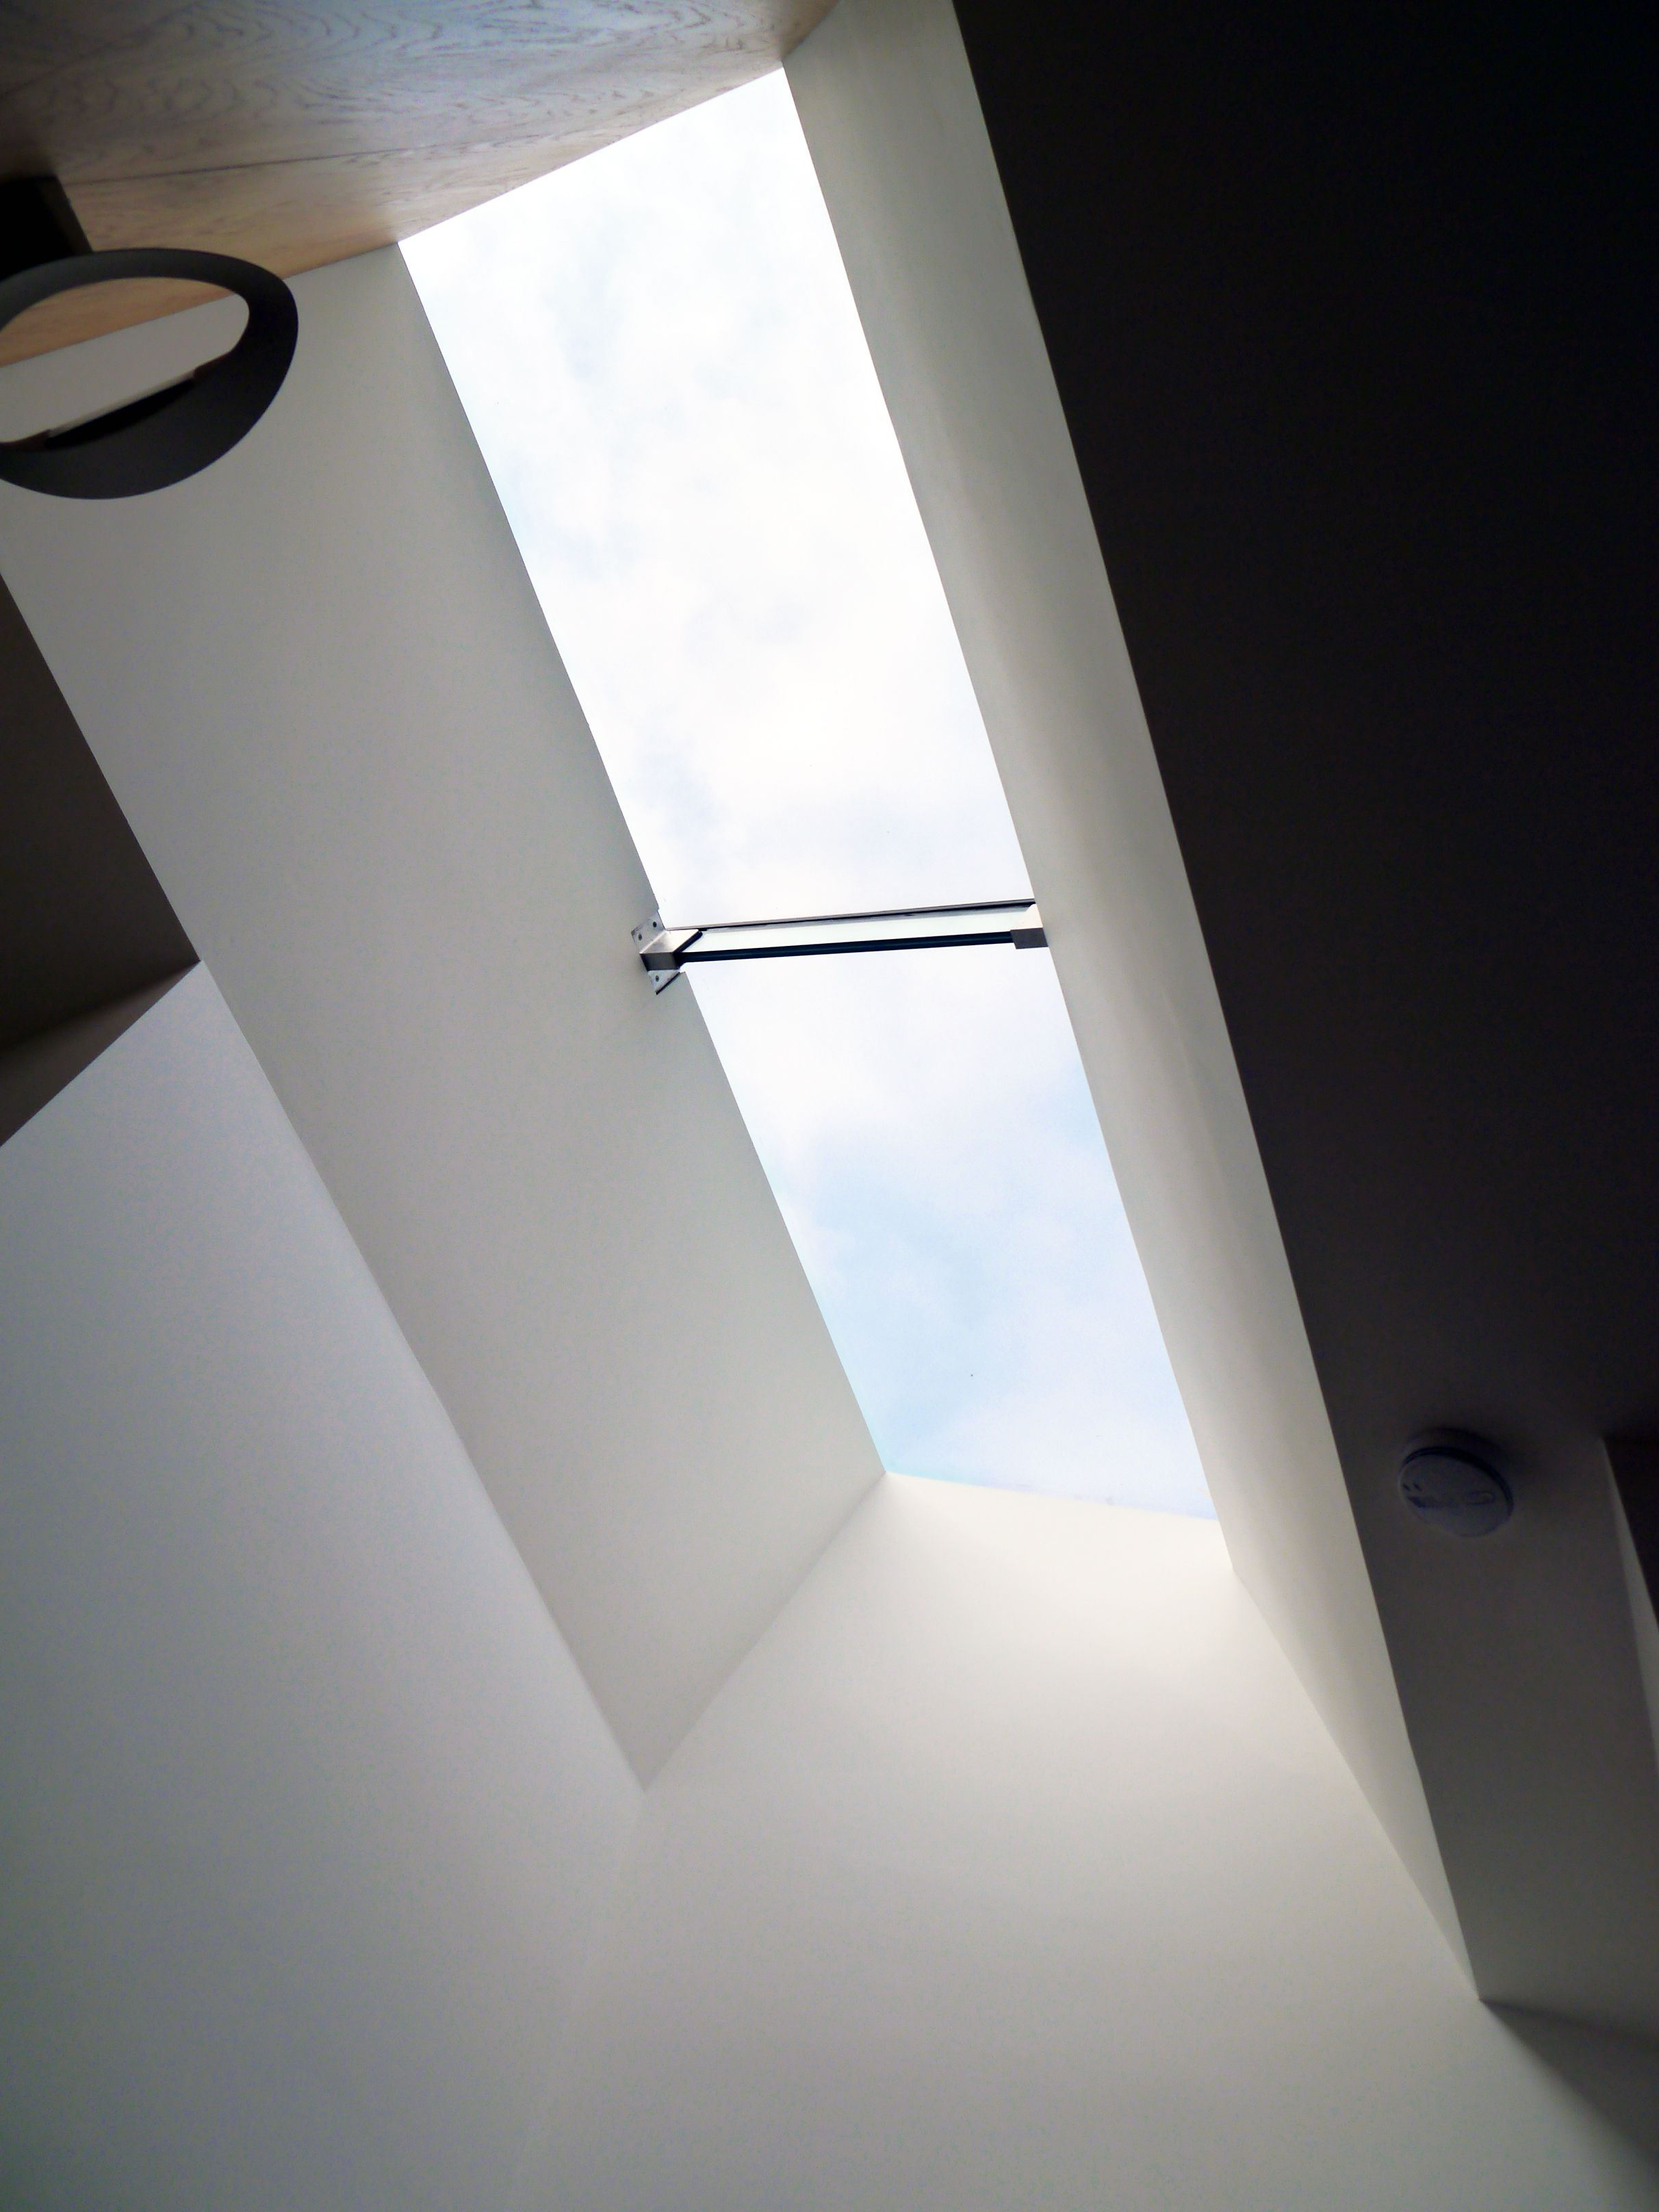 Flushglaze With Glass Fins For An Elegant Contemporary Look